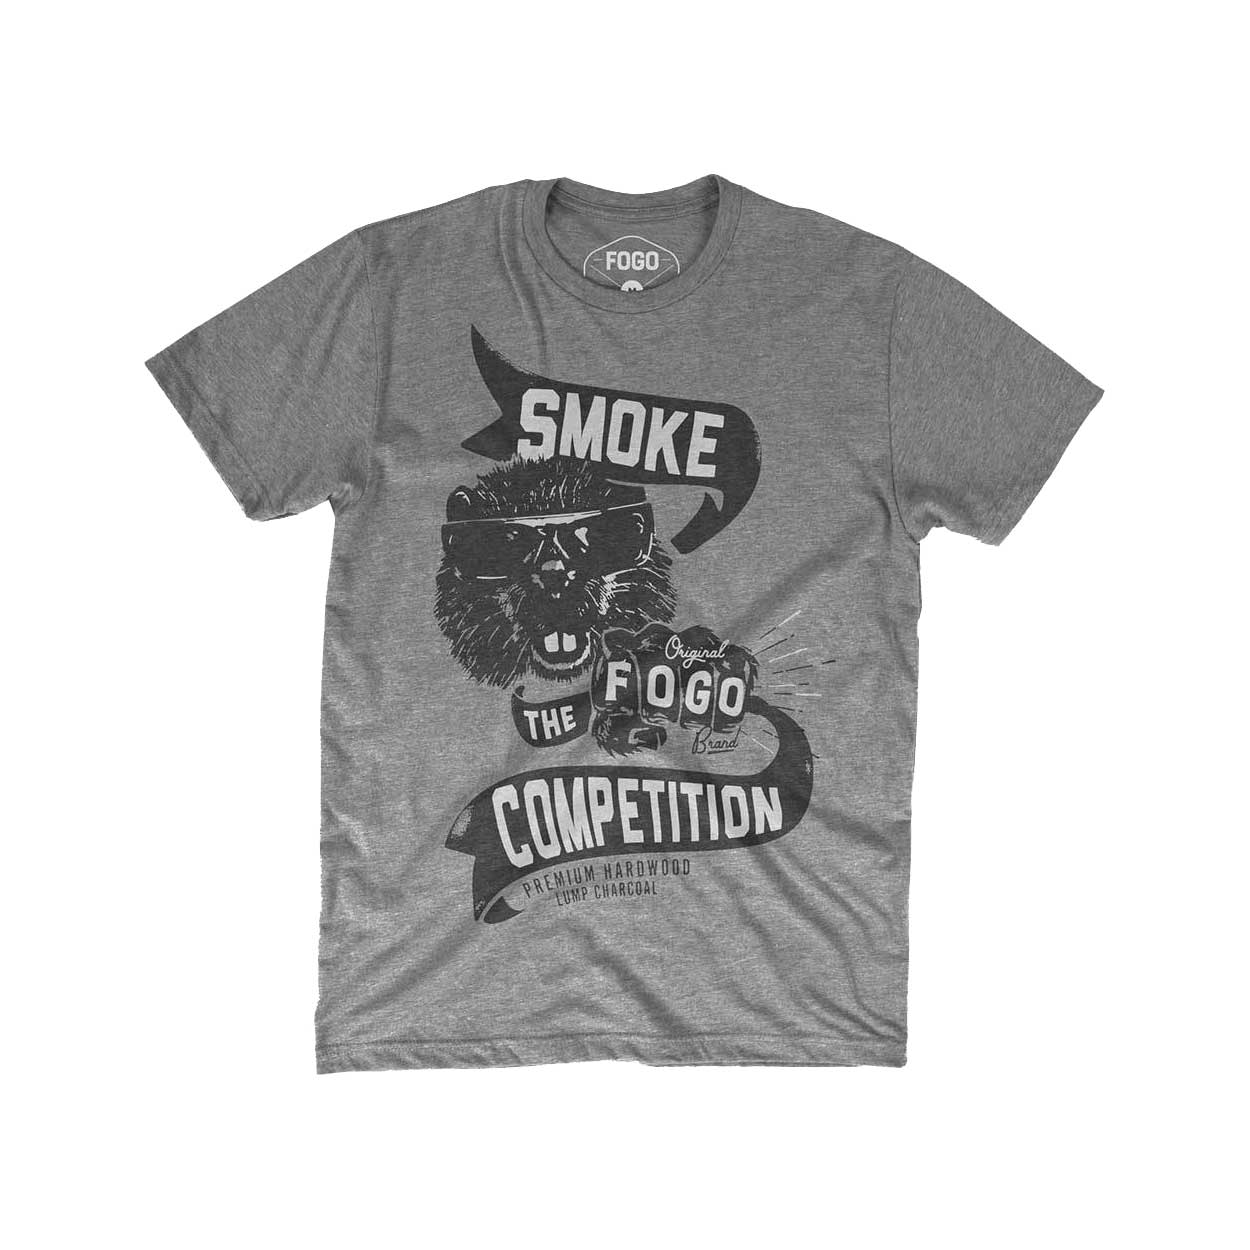 FOGO Smoke the Competition T